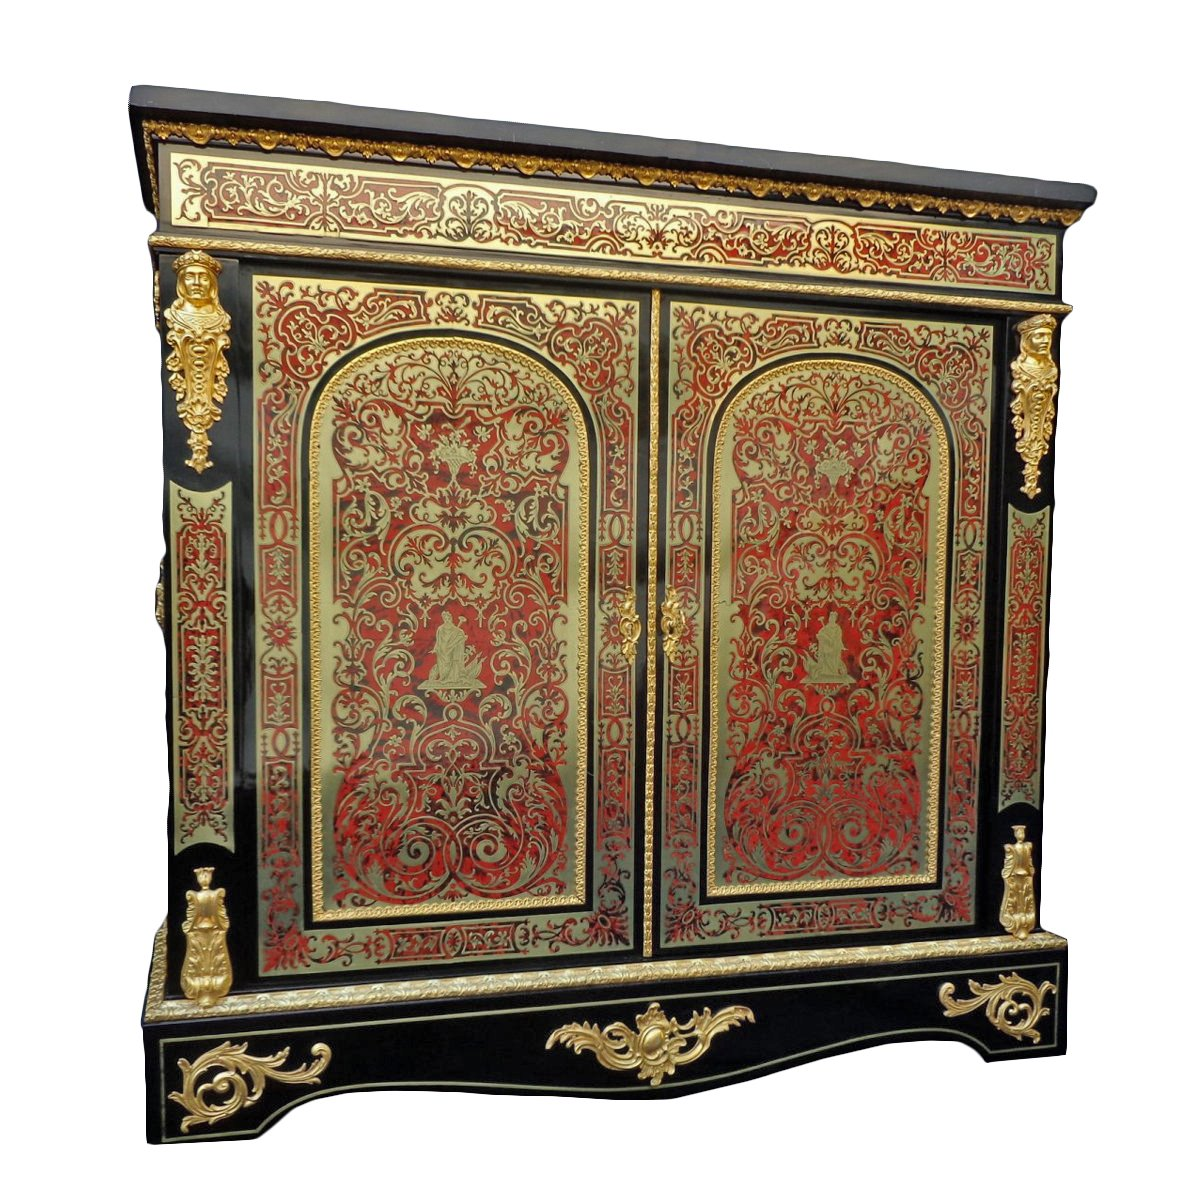 meuble d 39 appui en marqueterie boulle epoque napol on iii xixe si cle. Black Bedroom Furniture Sets. Home Design Ideas